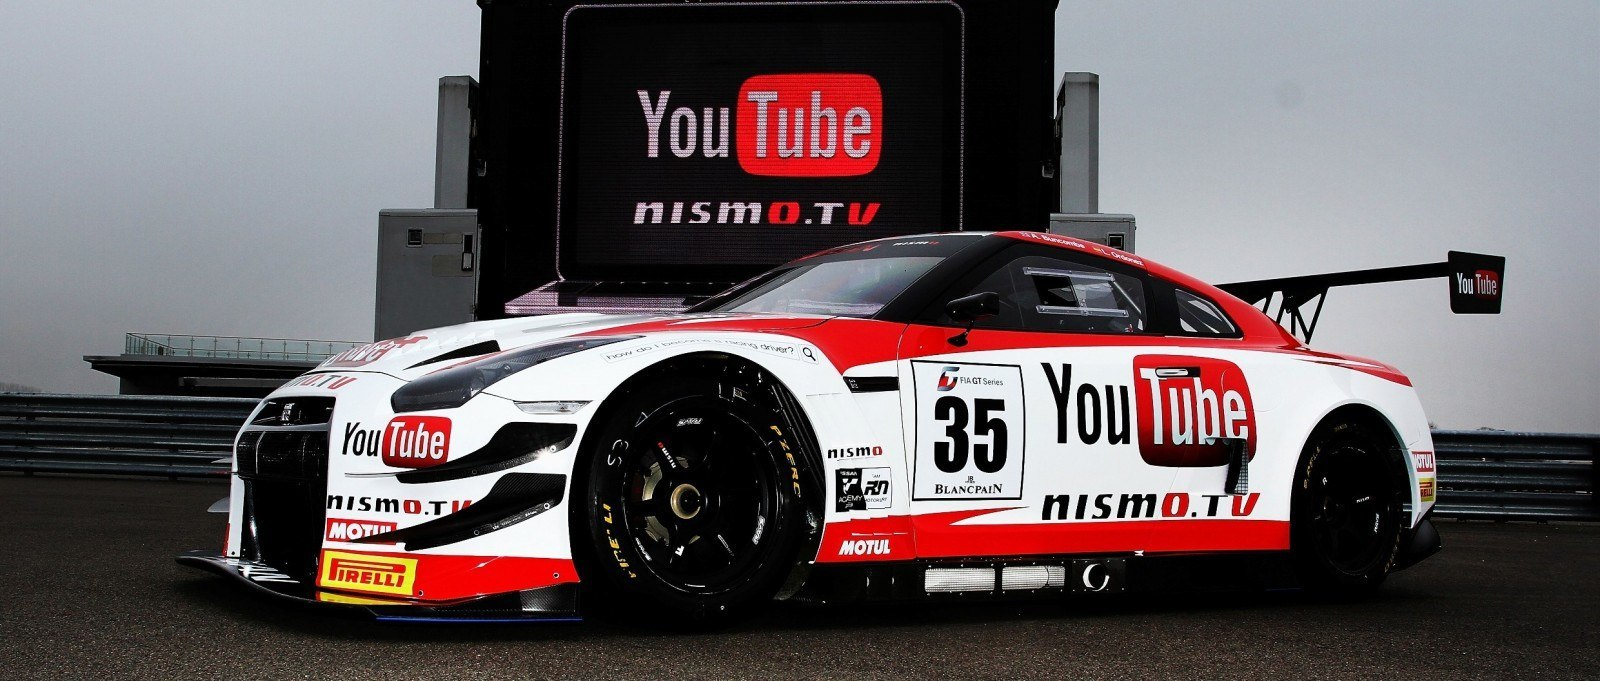 Nissan GT-R GT3 COnfirmed for 2014 Nurbugring 24H Race in June 24